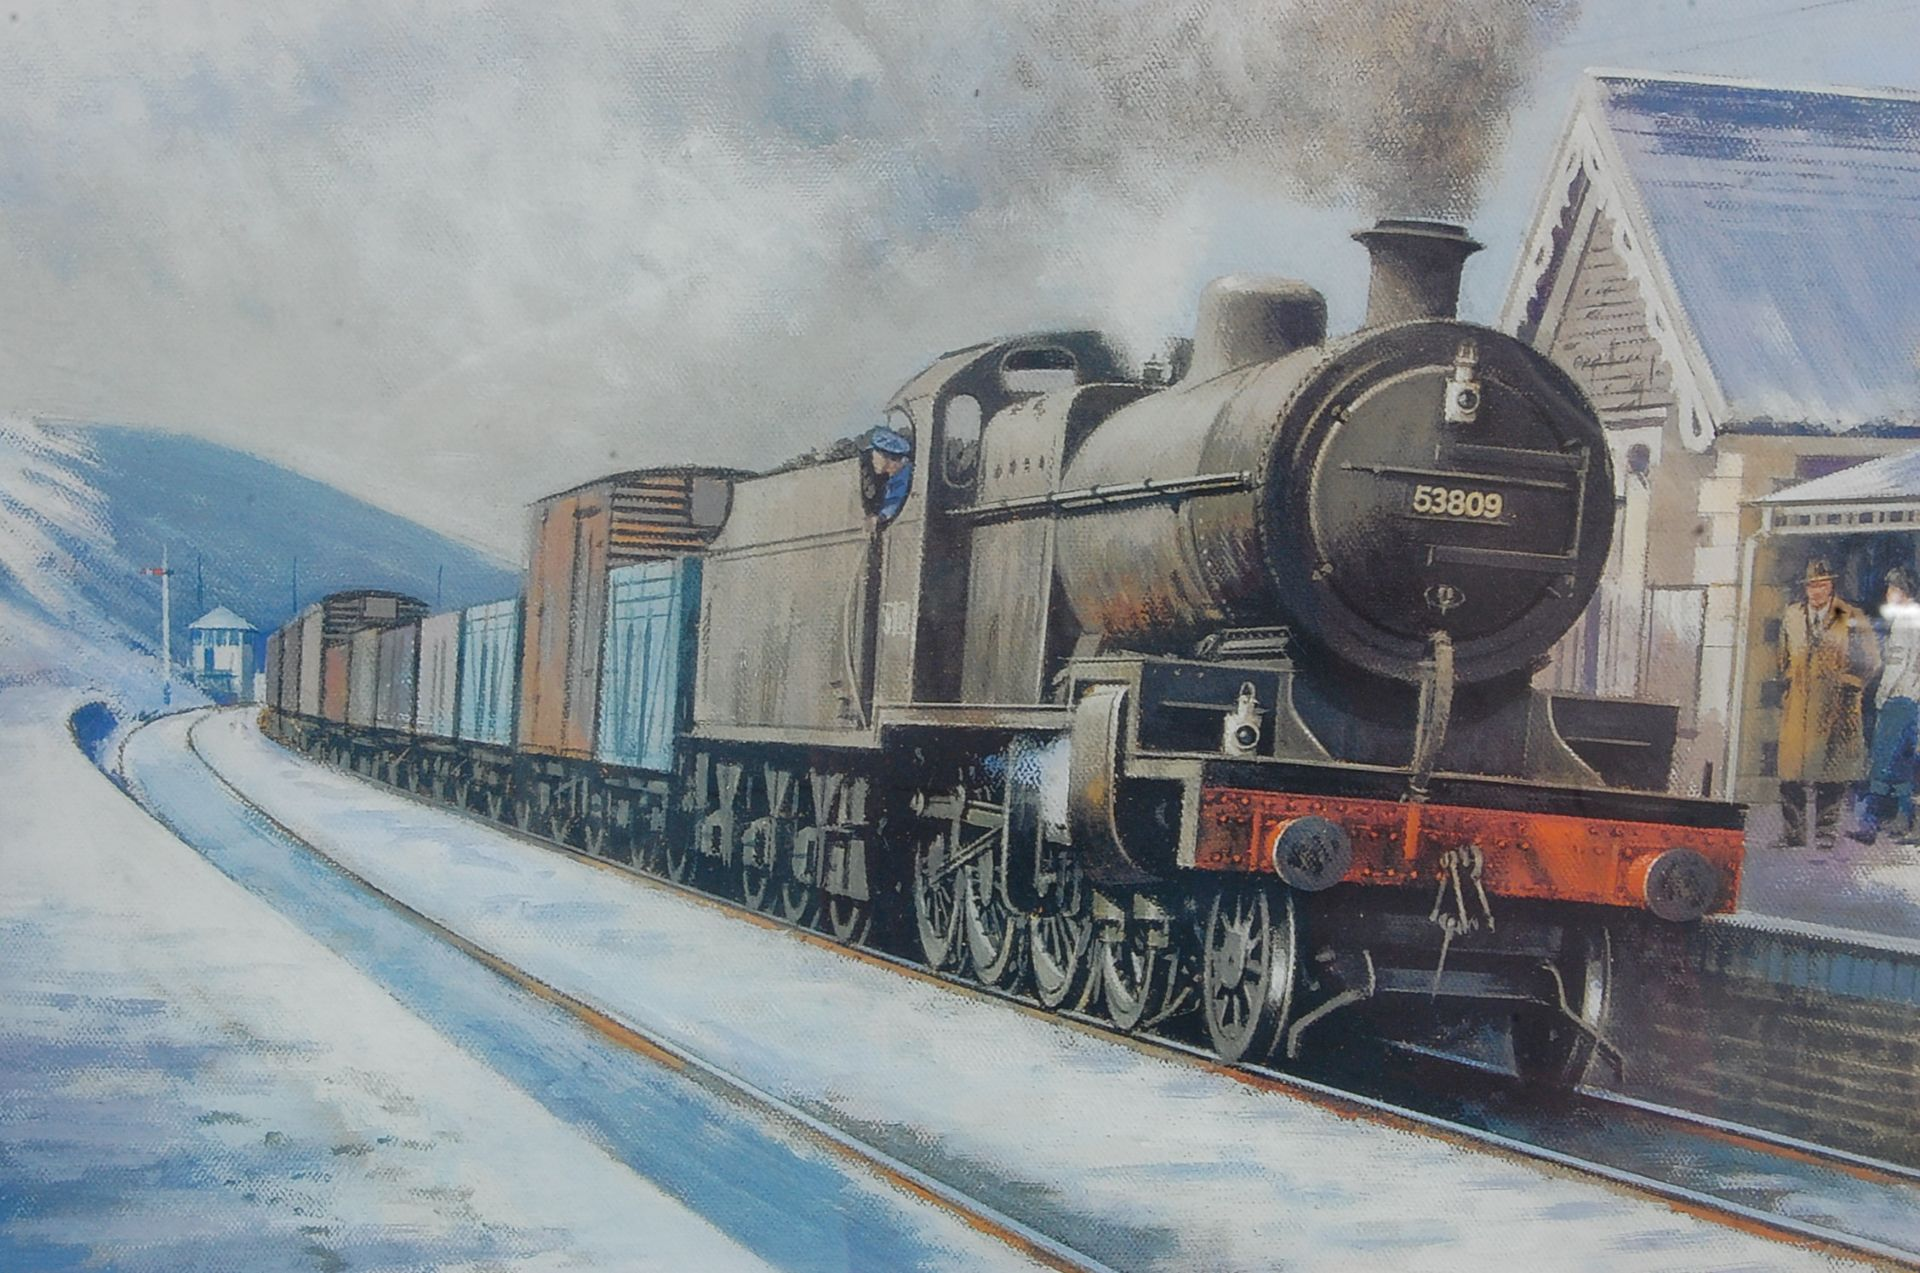 RAILWAY INTEREST - STEAMING THROUGH THE SNOW AT BITTON - LTD ED PRINT - Bild 5 aus 9